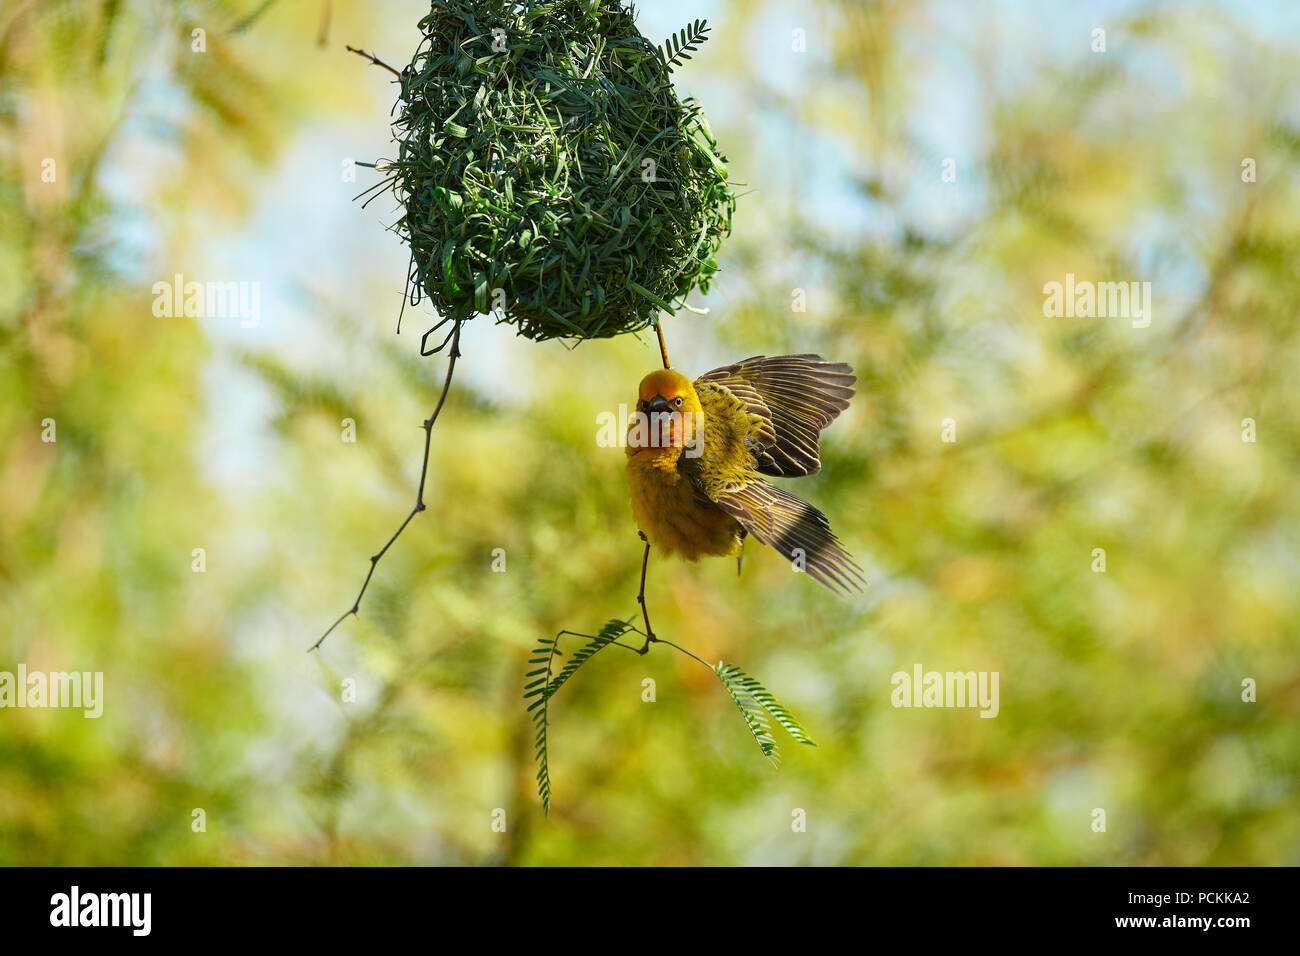 Cape Weaver building nest in Camel Thorn tree - Stock Image